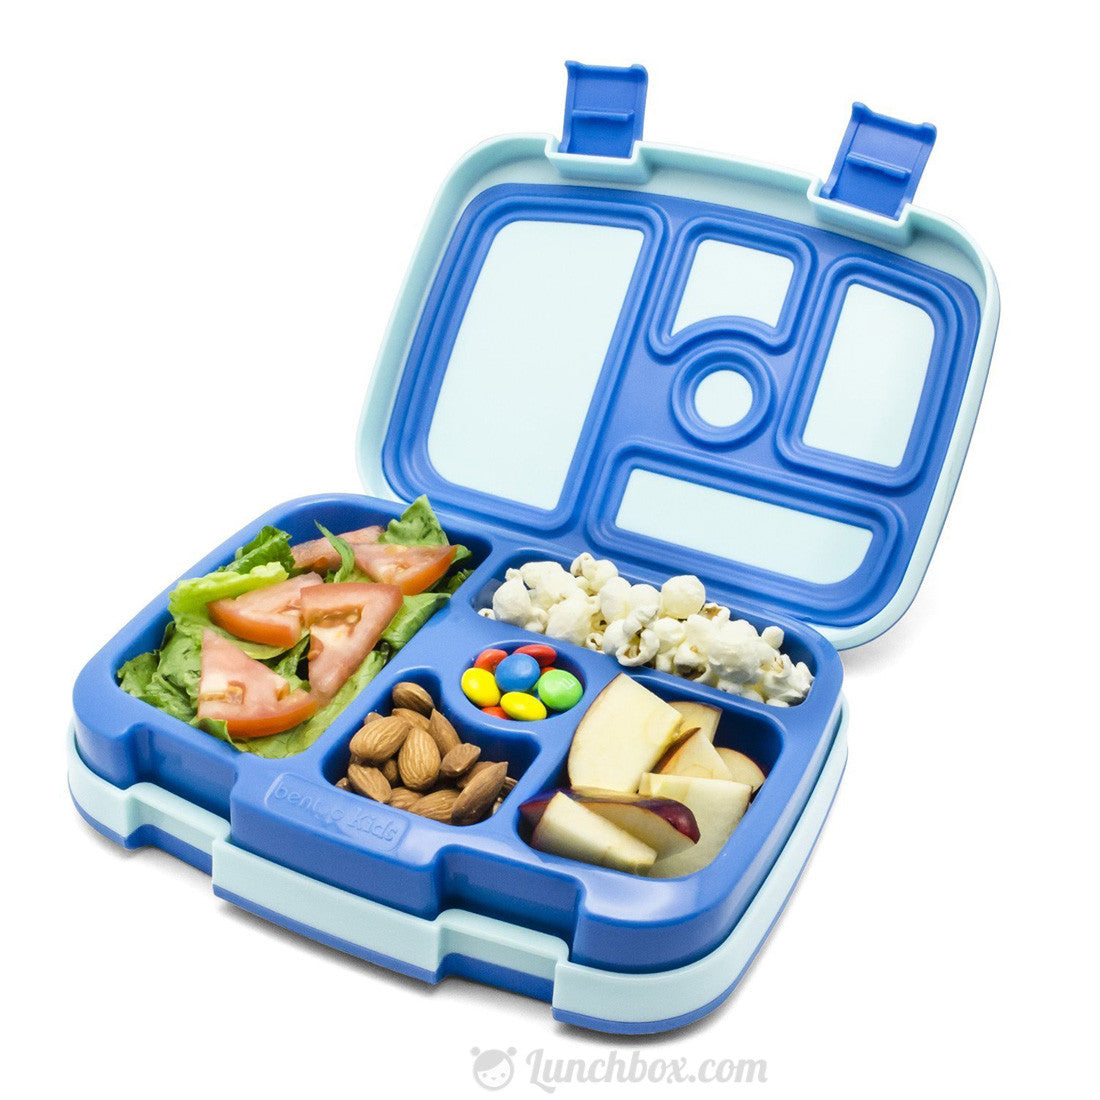 The Best 3 Compartment Meal Prep Containers • Bento Box ...  |Bento Box Lunch Containers